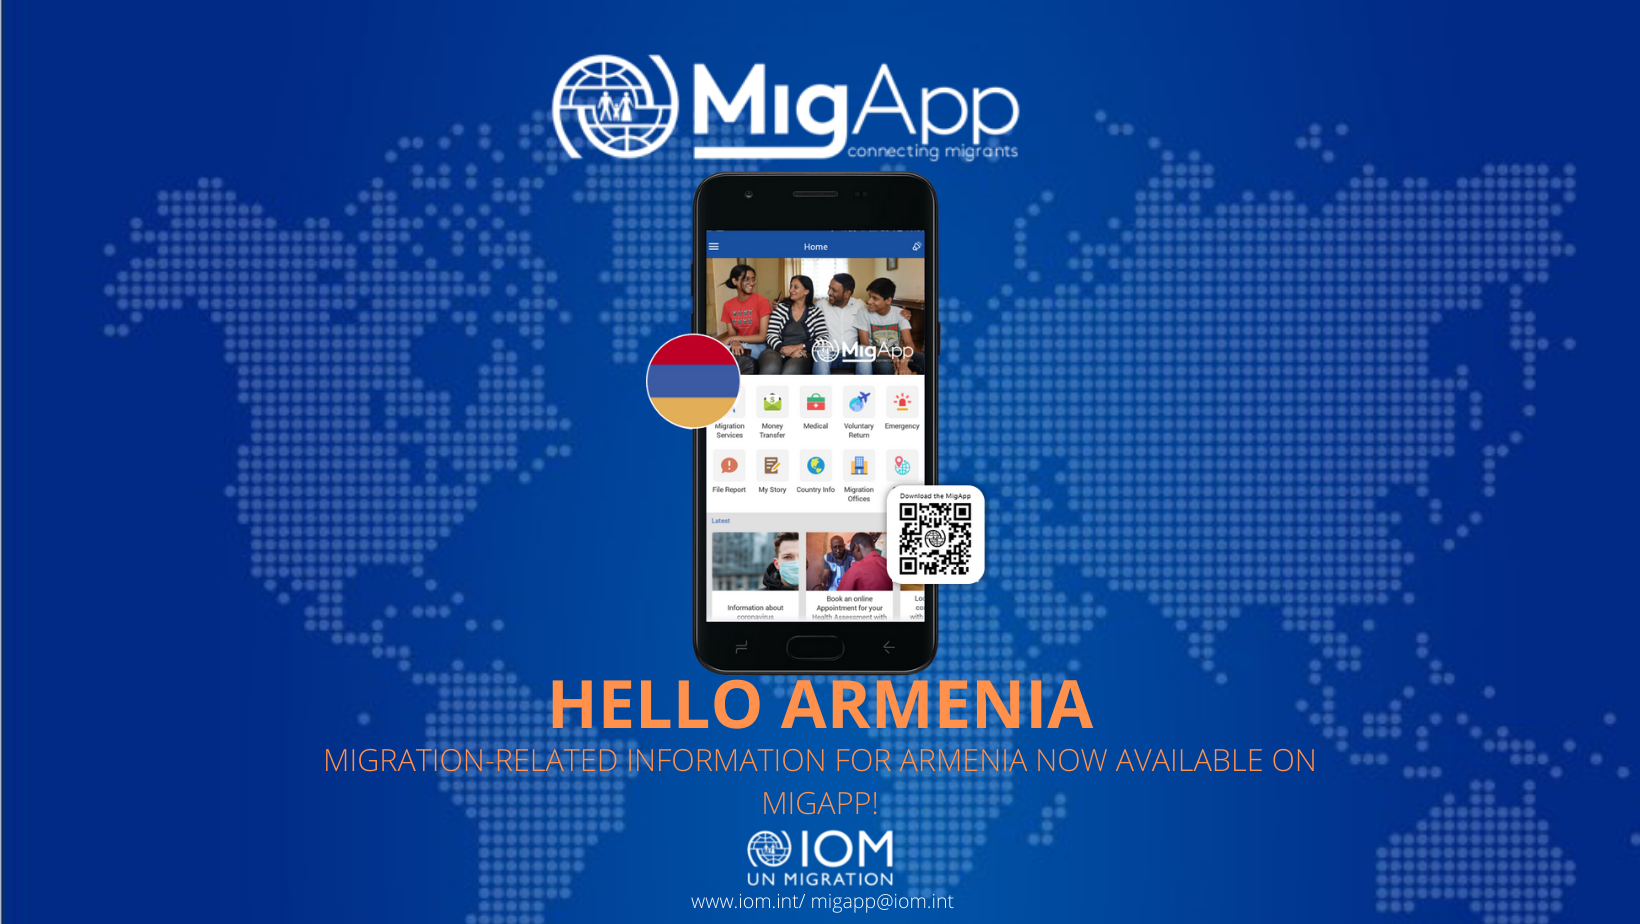 The poster of MigApp.